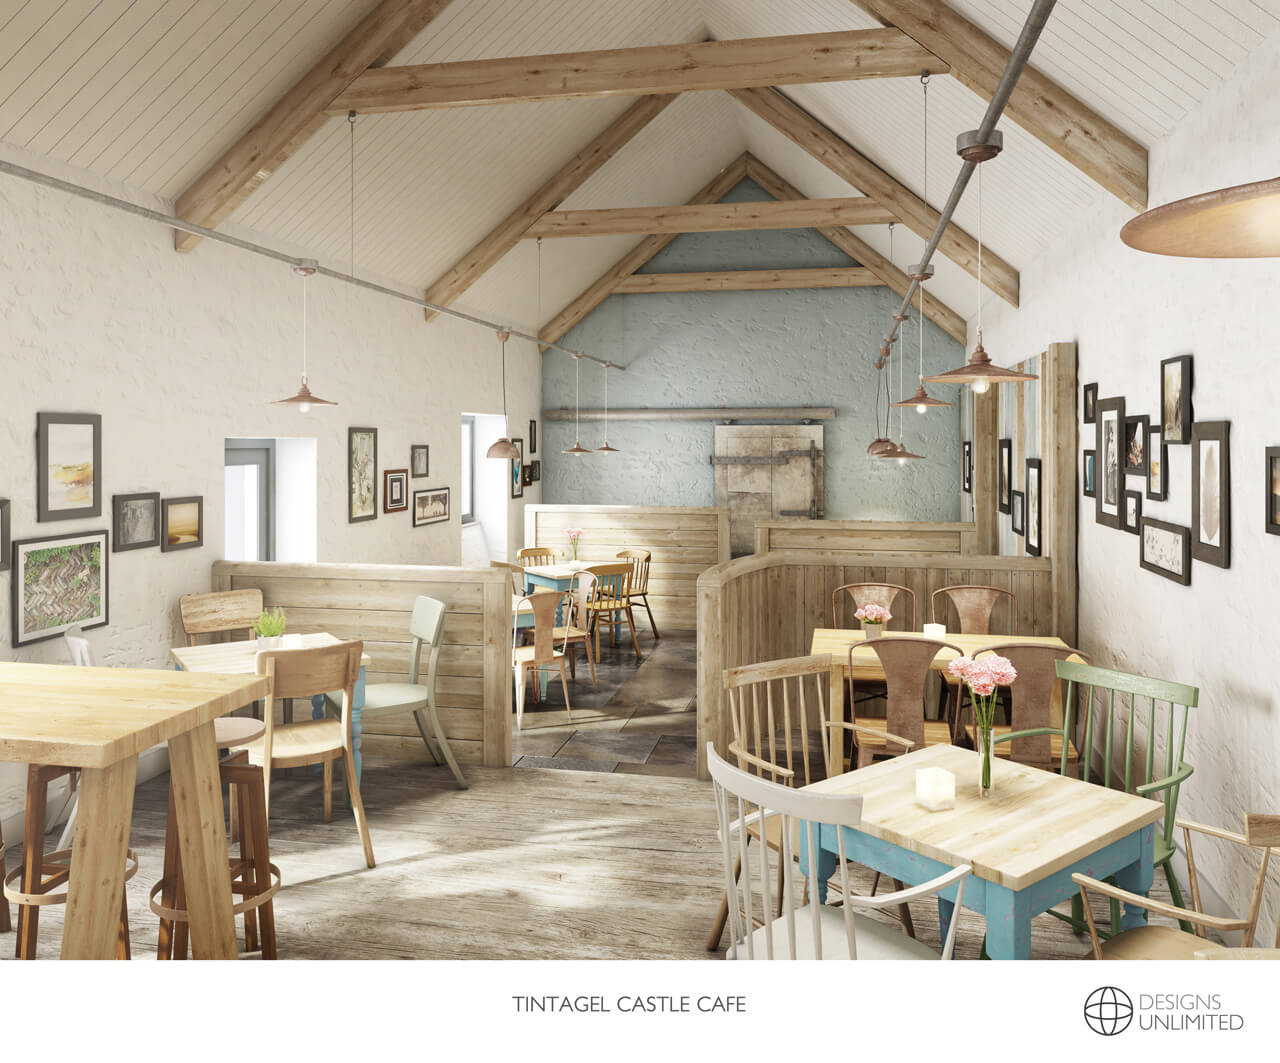 The Value of 3D Visuals - Interior Architecture Design for Cafe - Tintagel Castle